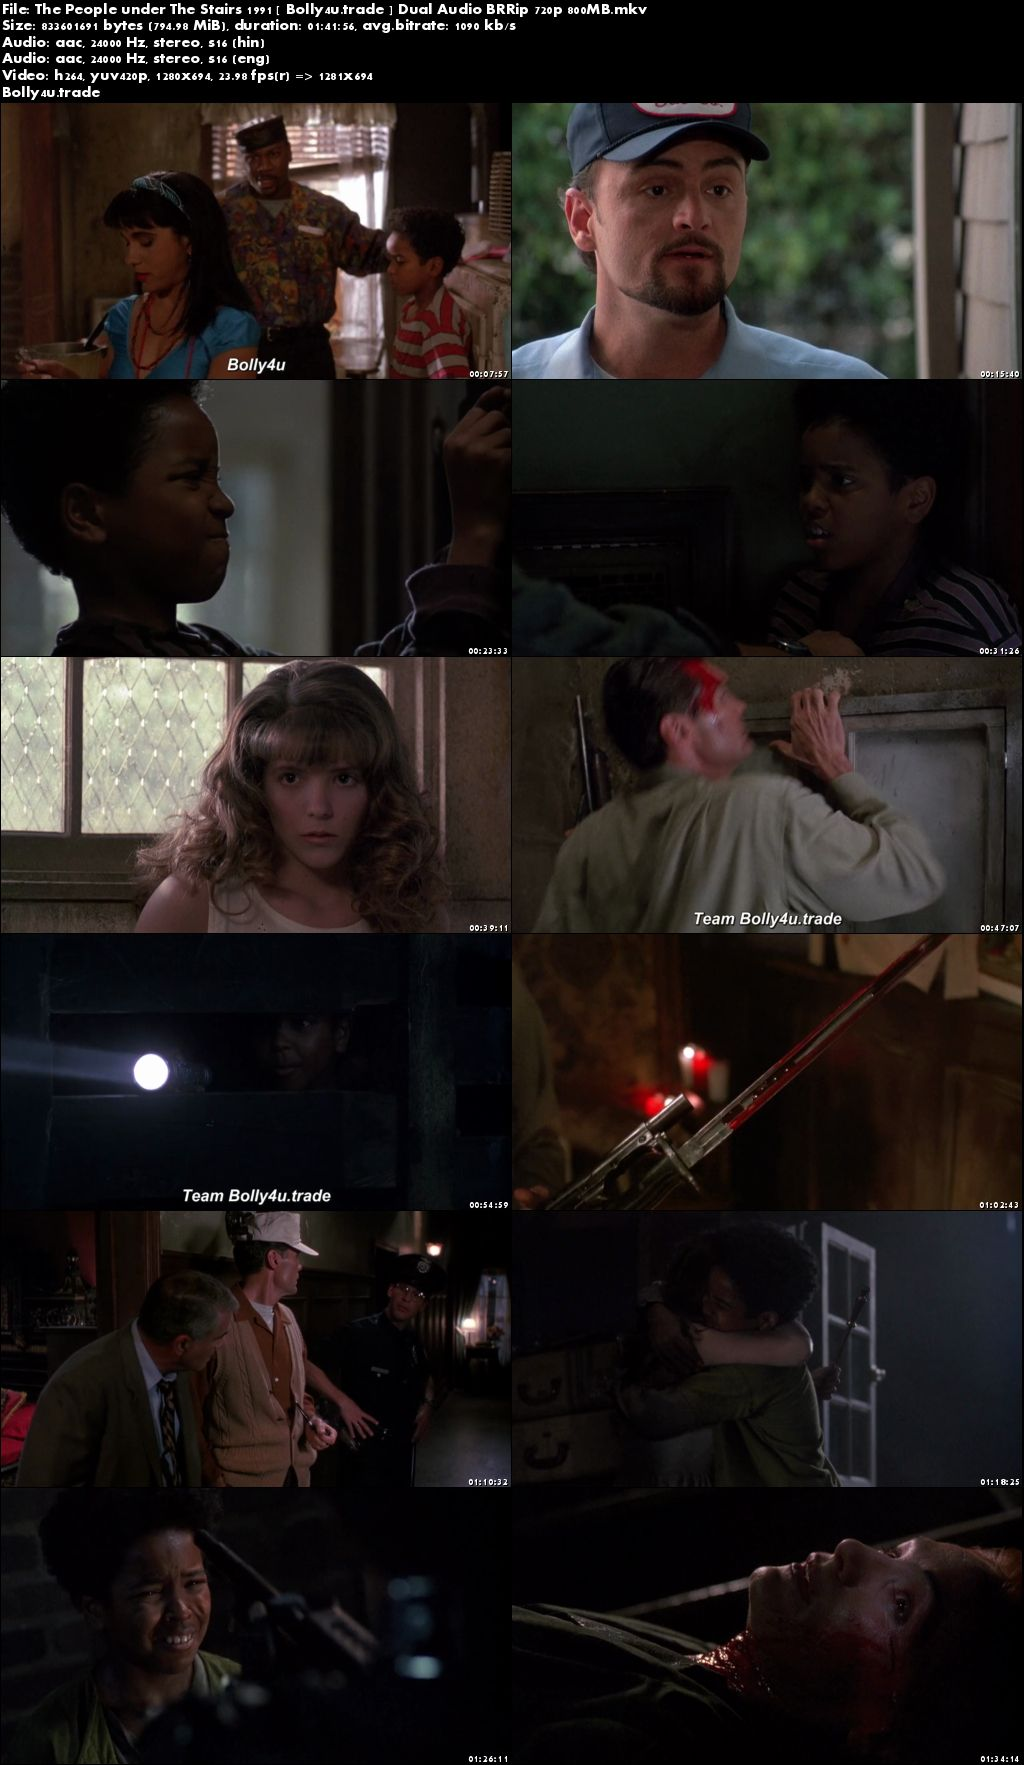 The People Under The Stairs 1991 BRRip 800MB Hindi Dual Audio 720p Download